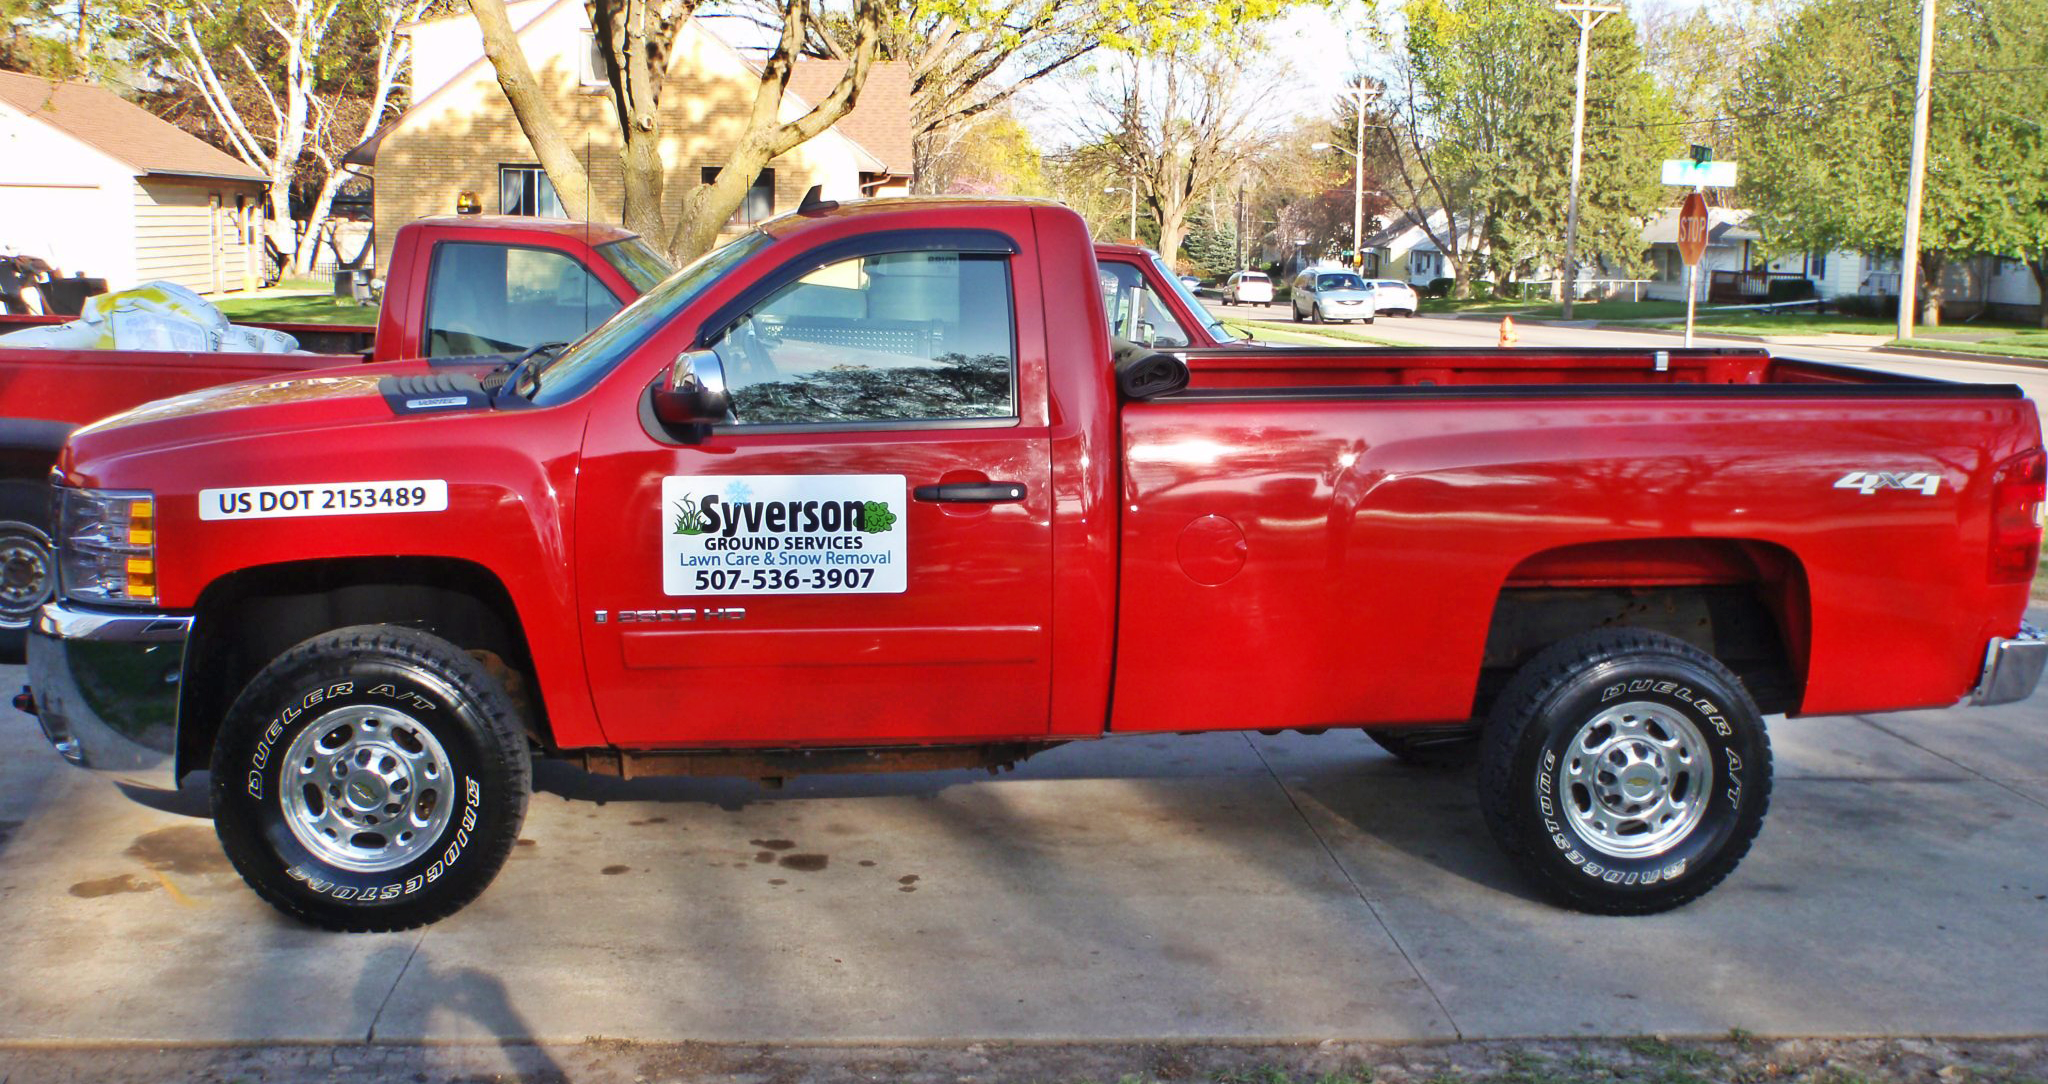 syverson-ground-services-lawncare2-850x400